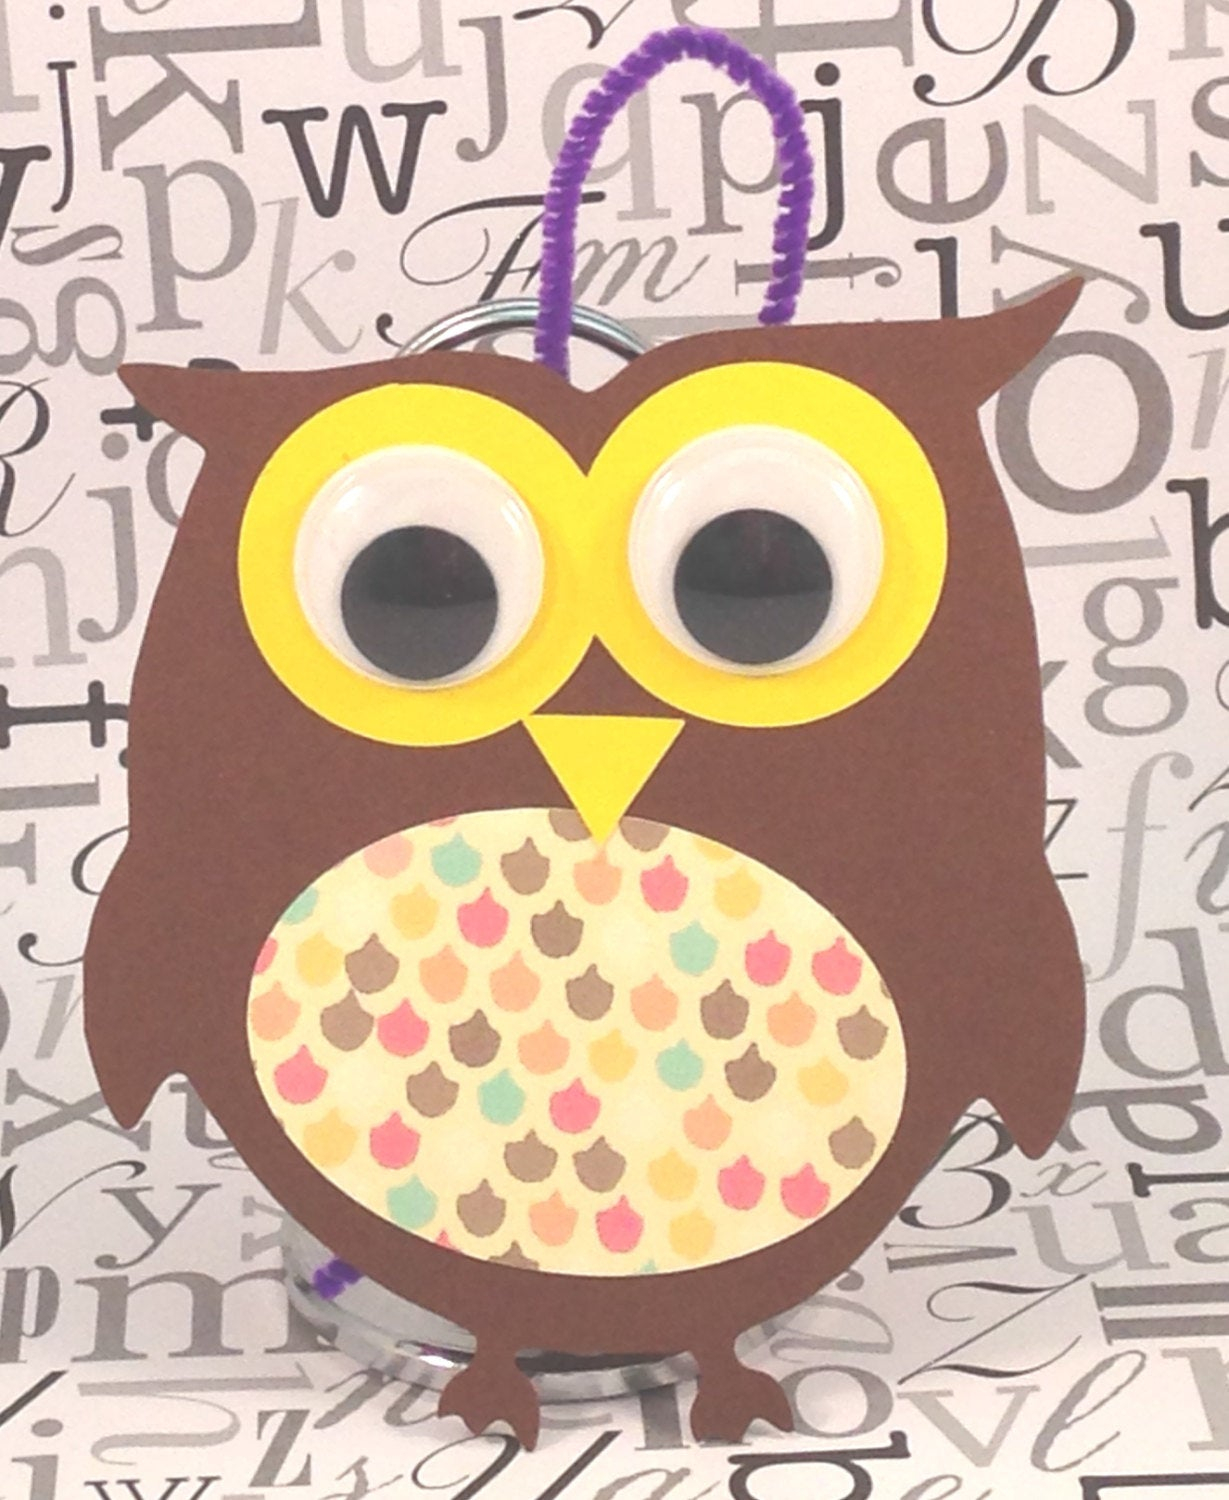 The simple paper owls crafts idea Owl Ornament Bird Animal Craft Kit For Kids Birthday Party Favor Decoration Arts And Crafts Stocking Stuffer Or Scrapbooking